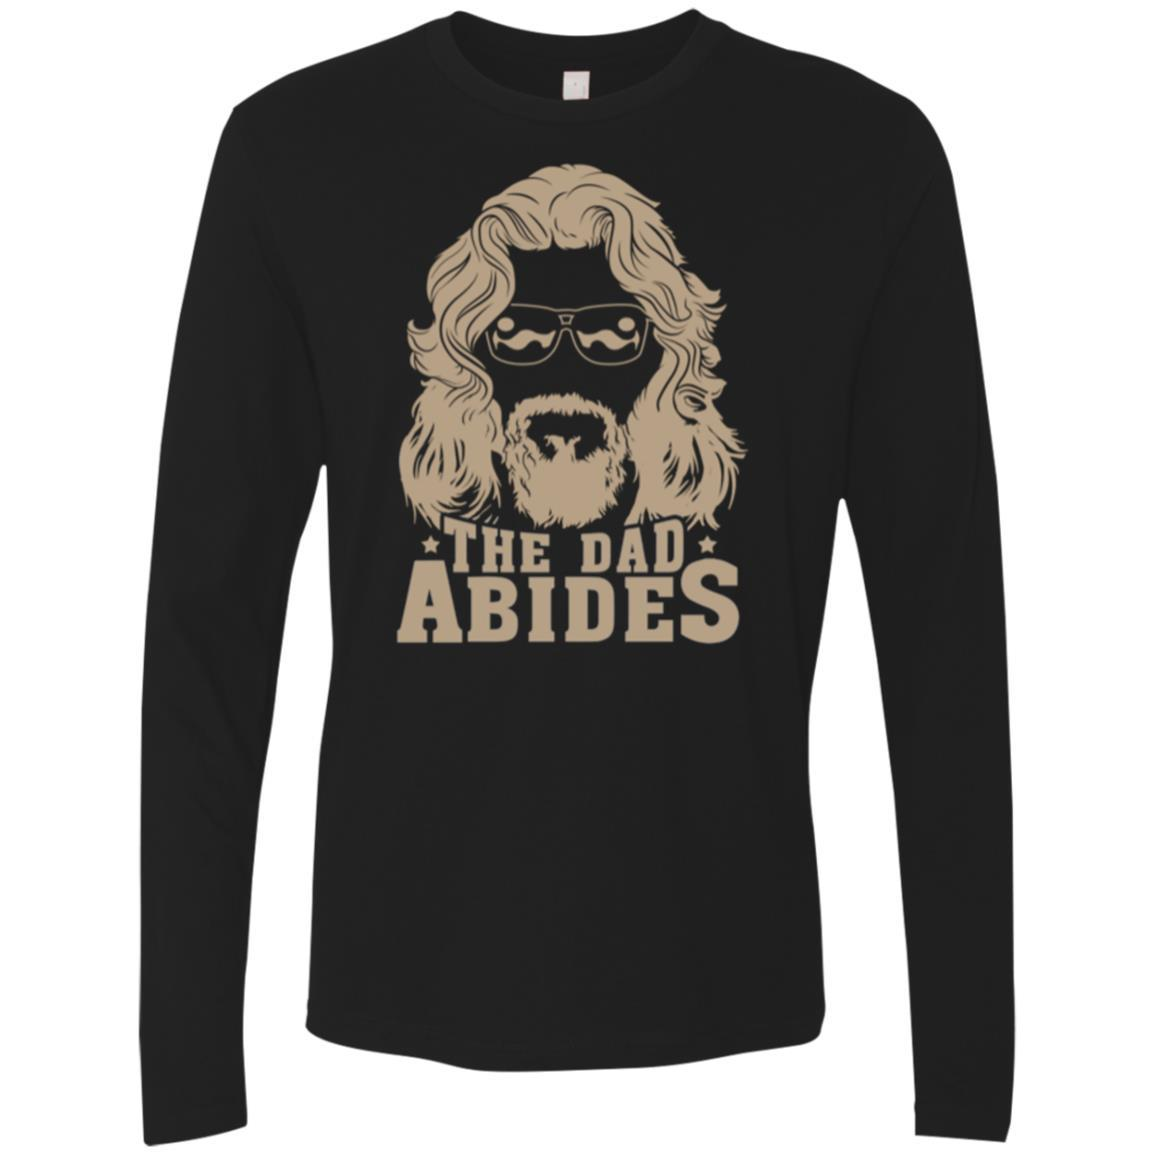 The Dad Abides Premium Long Sleeve